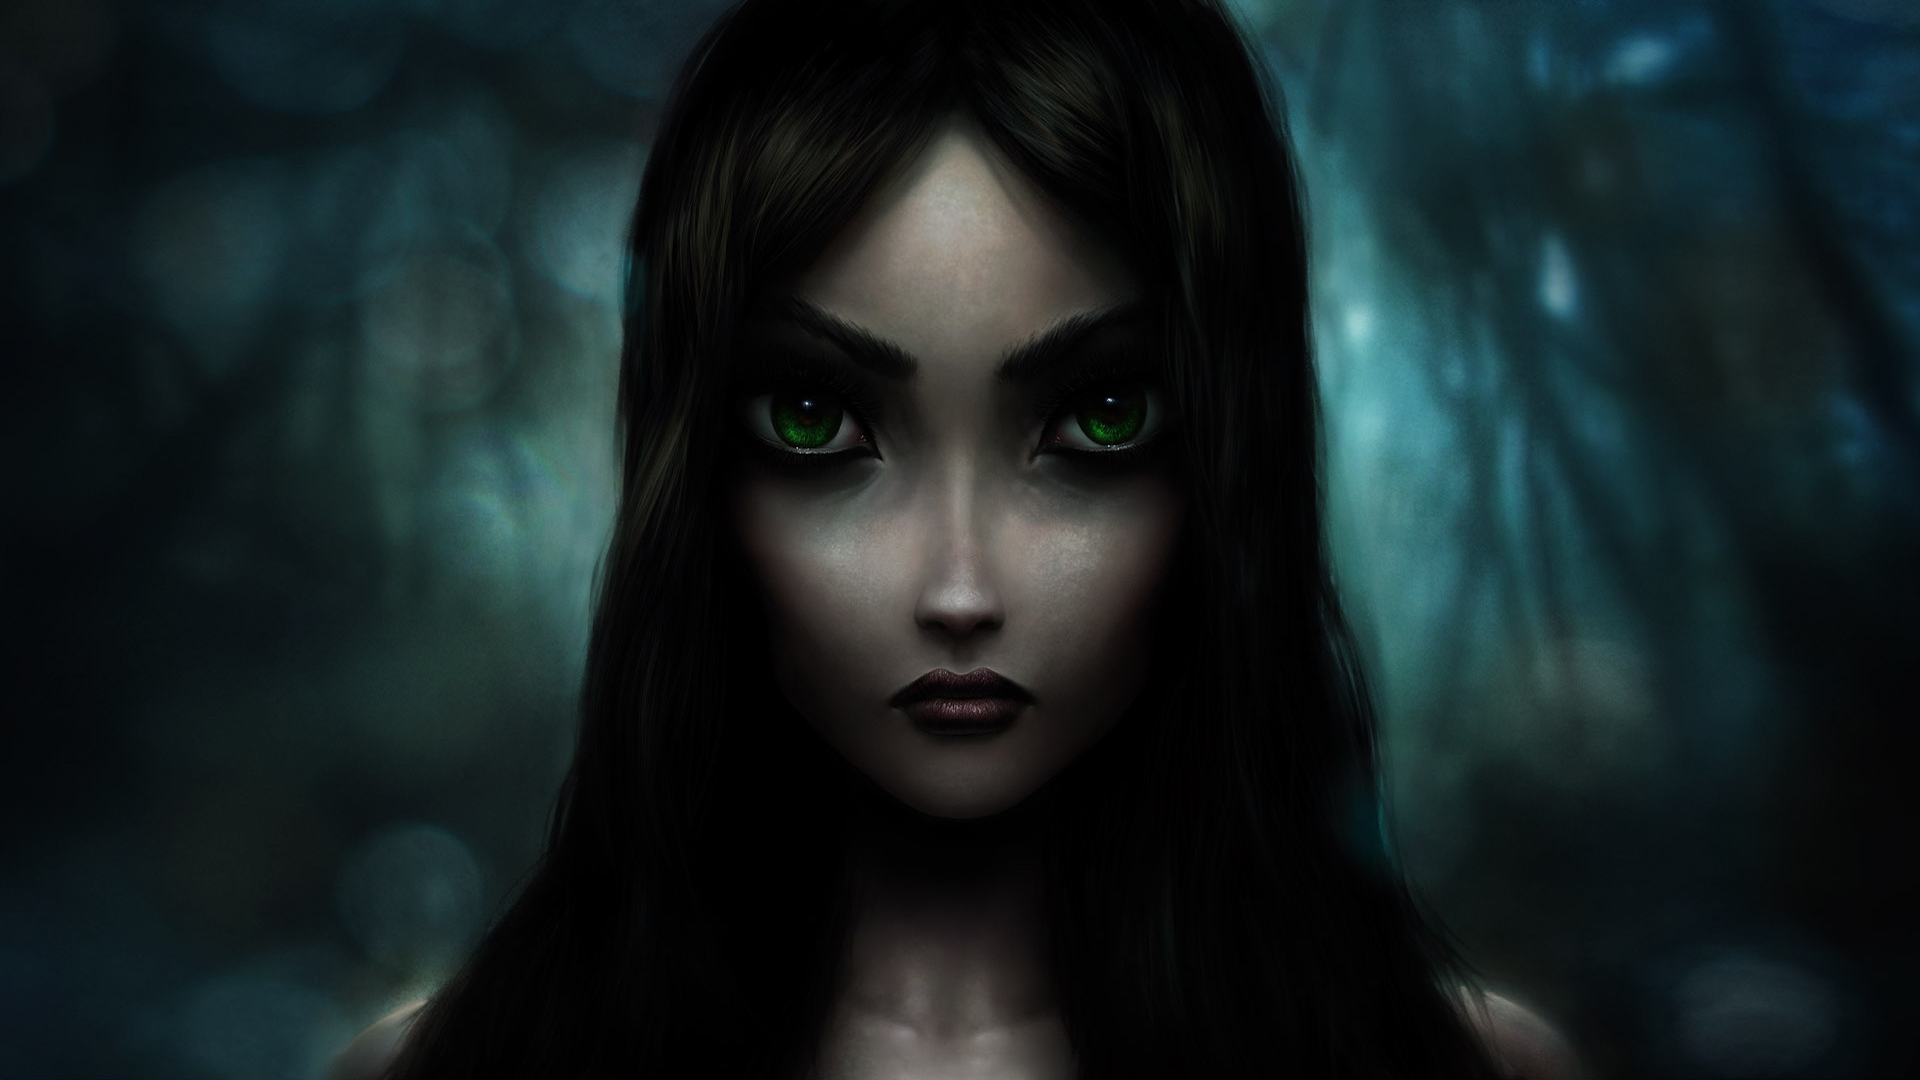 Alice madness return, wallpaper on the game